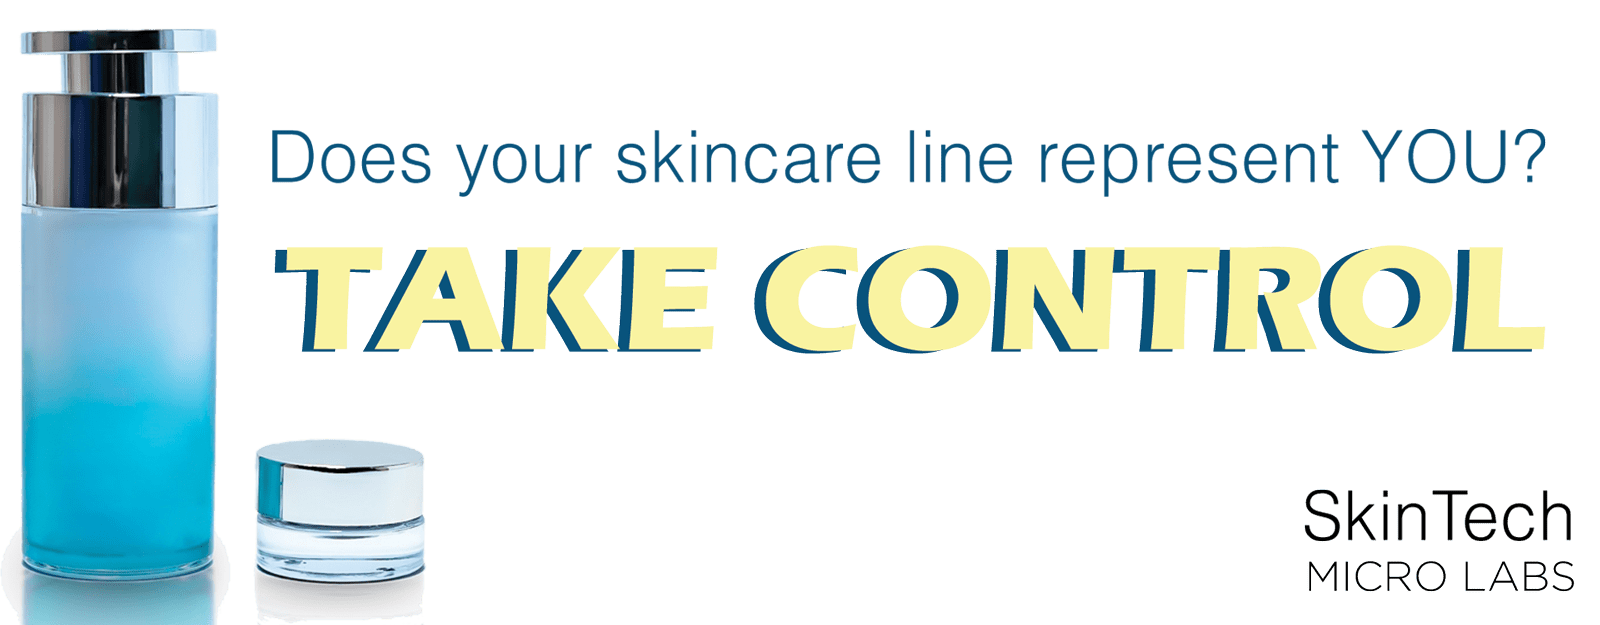 Does your skincare line represent you?